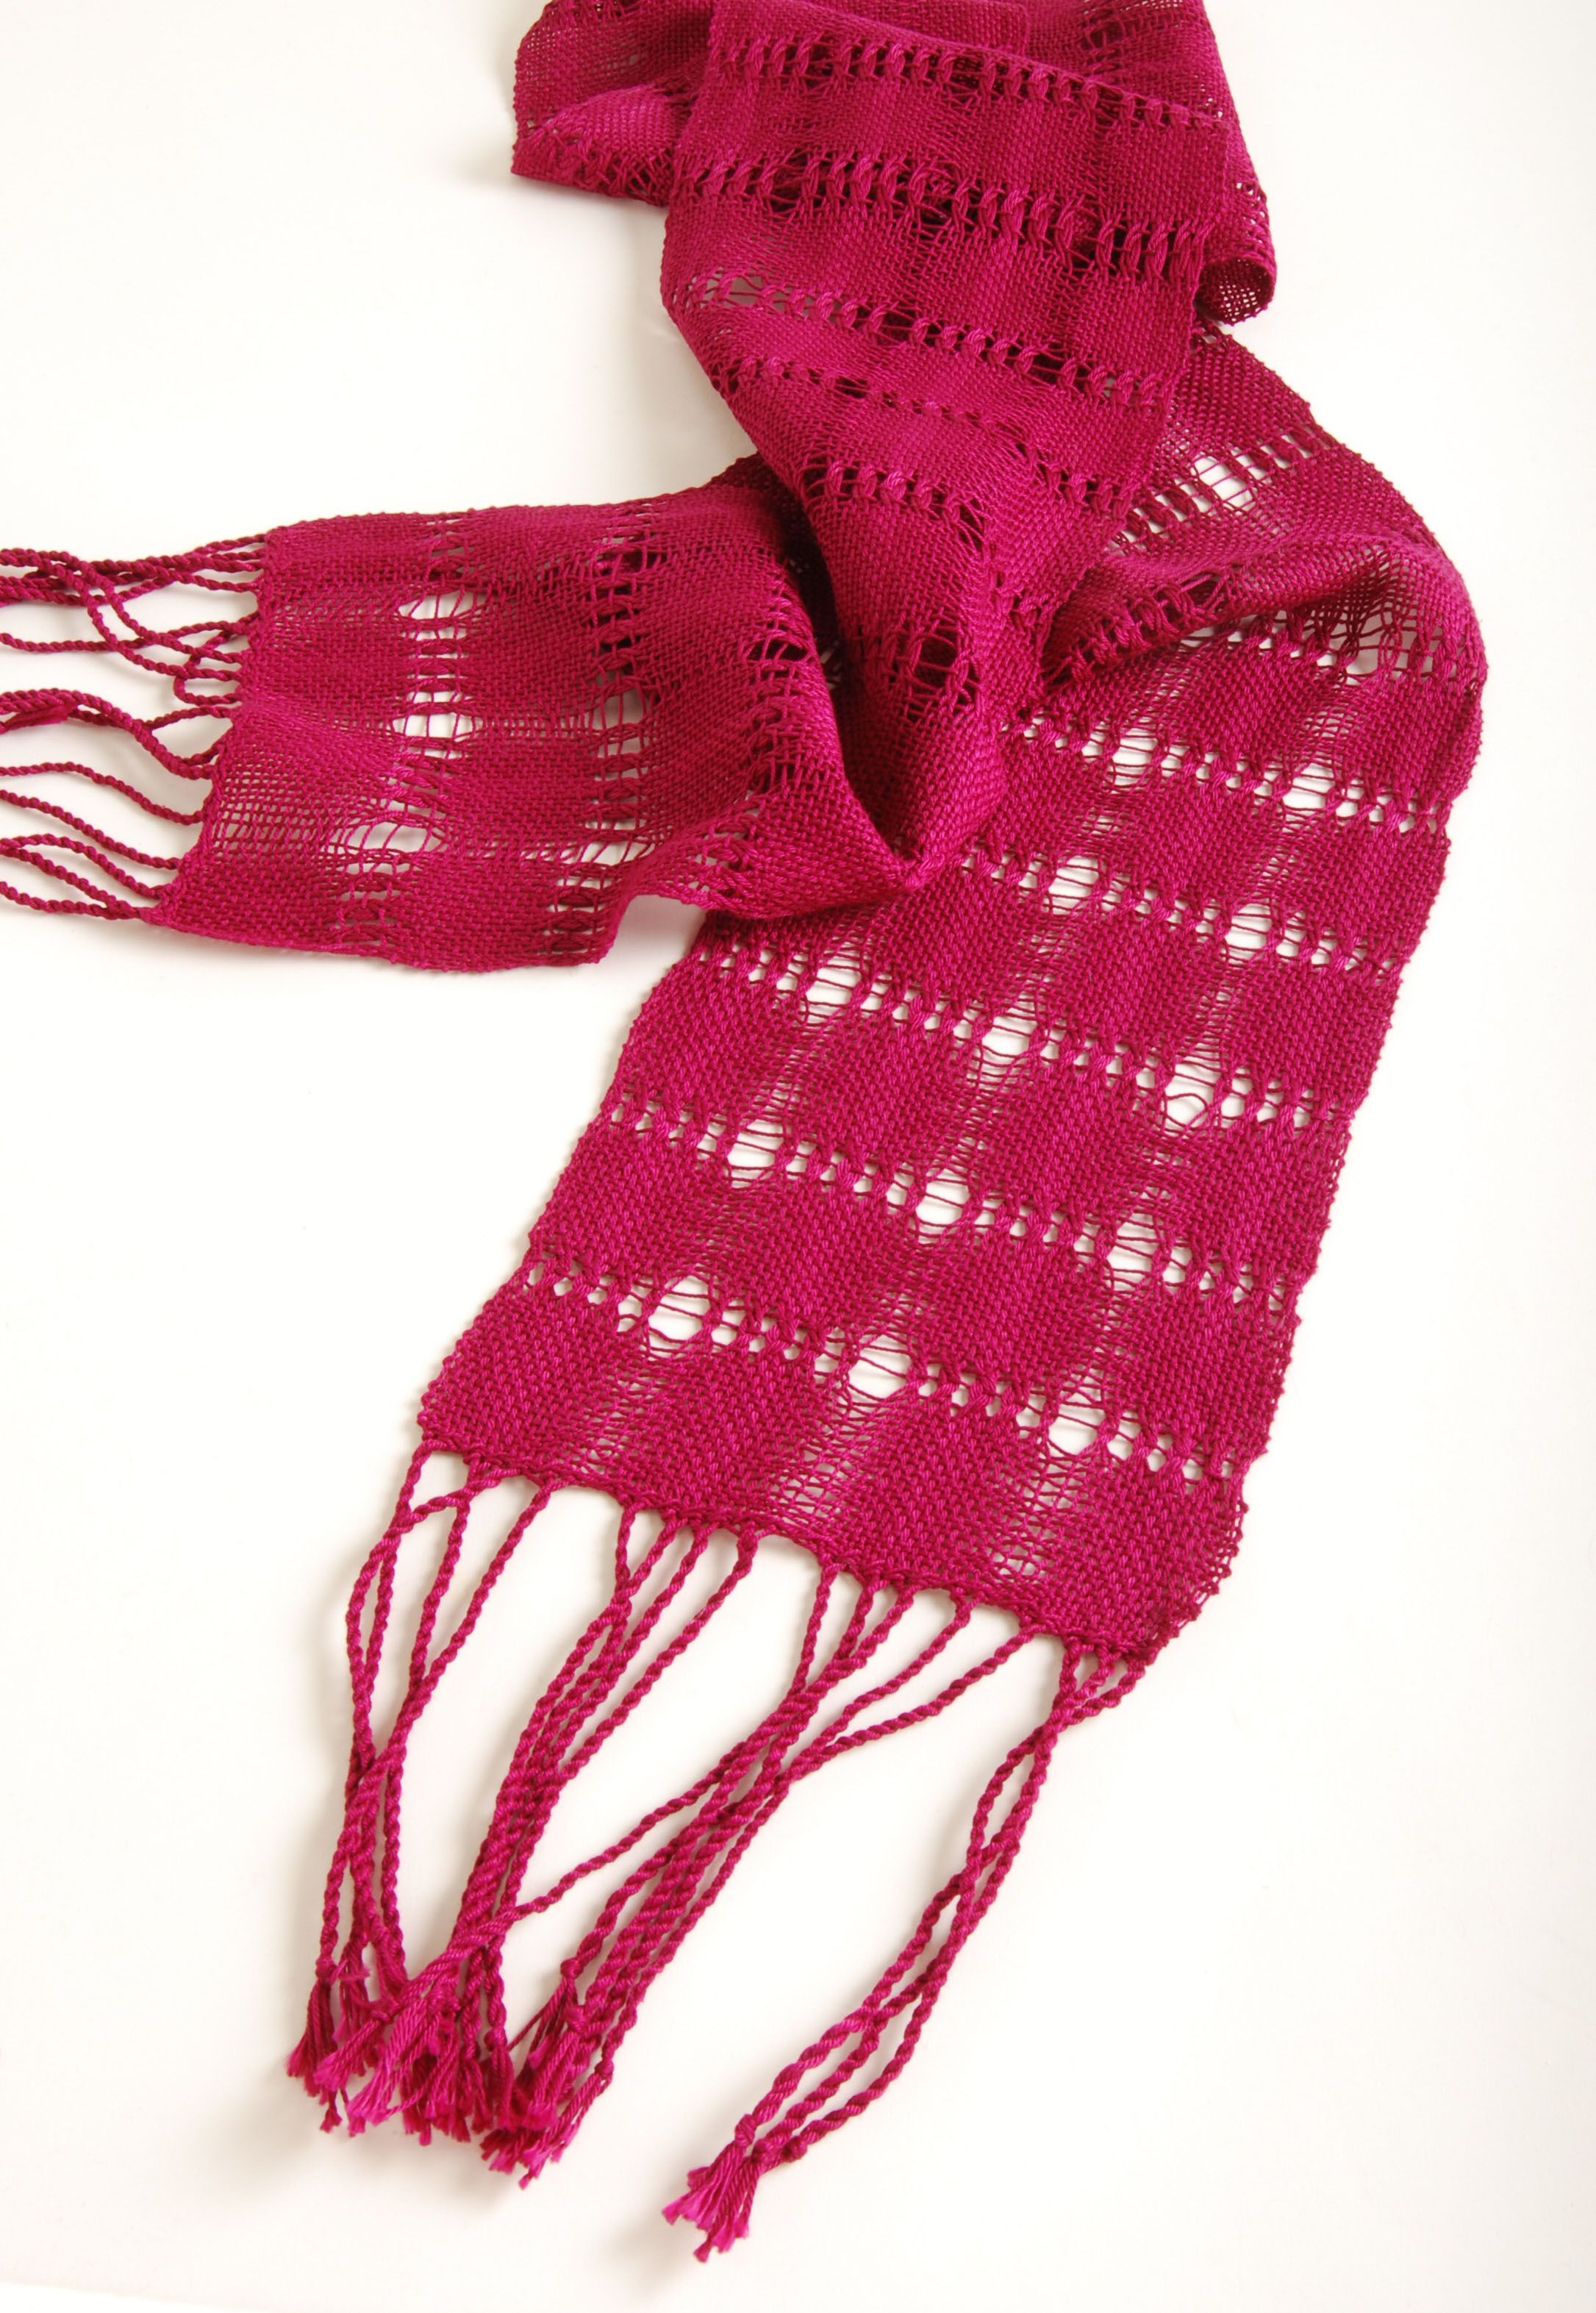 Lovely Leno Scarf. Directions can be found below. http://schachtspindle.com/dealers/project-cards/universal-lovely-leno-scarf.pdf